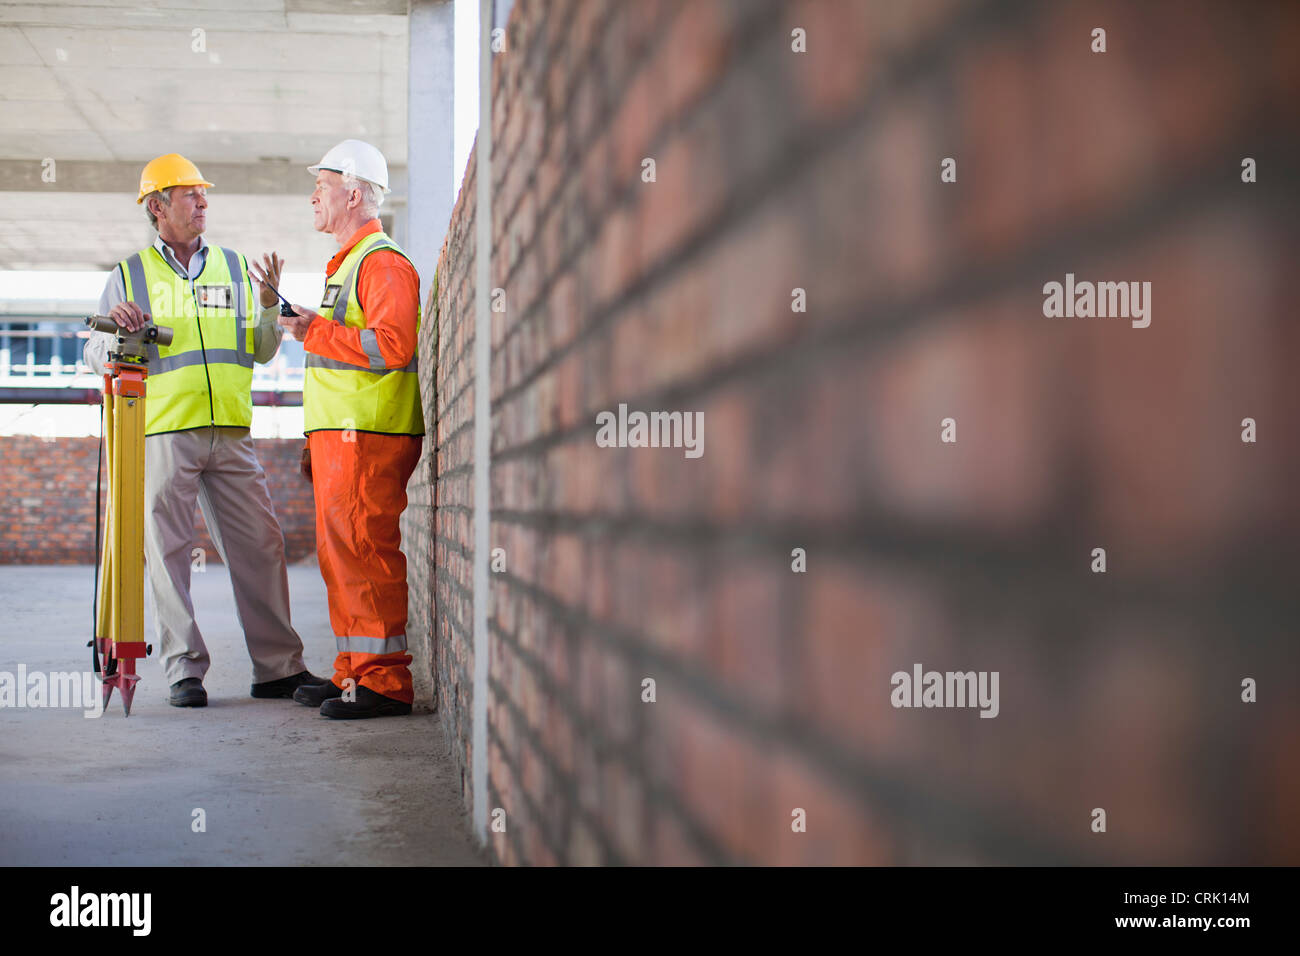 Workers talking at construction site - Stock Image